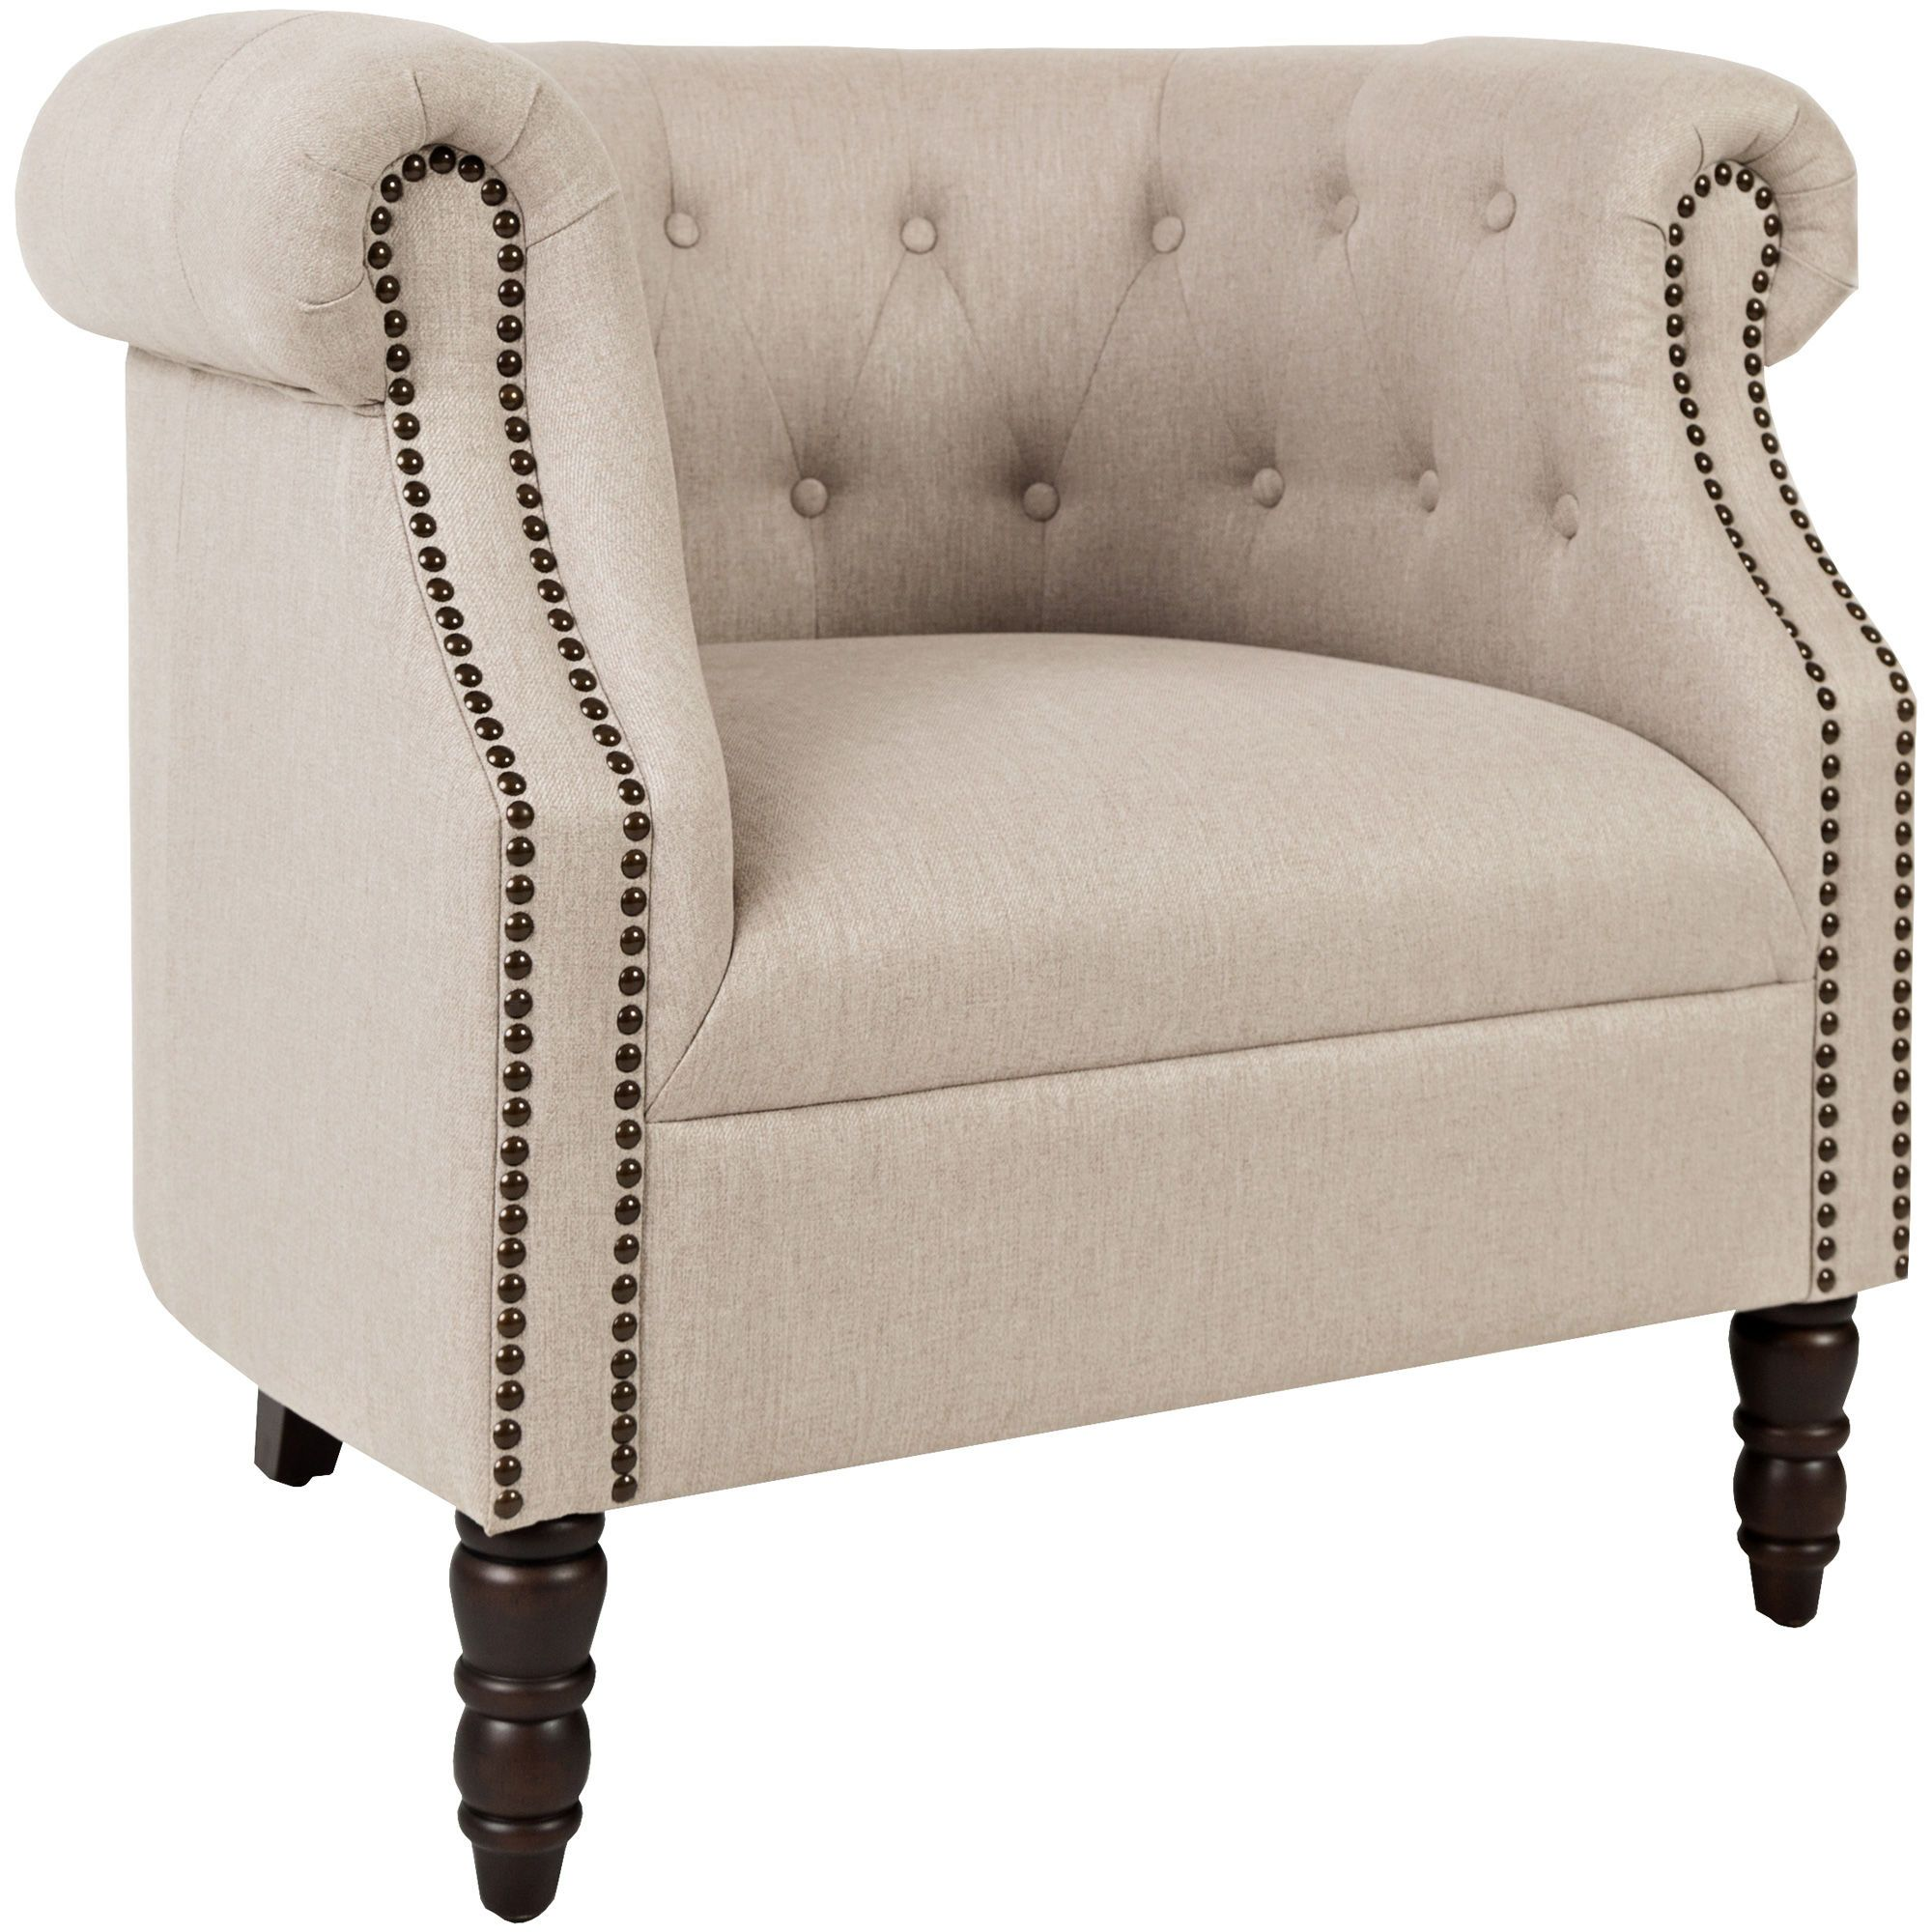 Slumberland Accent Chairs With Arms.Slumberland Furniture Meyersdale Taupe Tufted Tub Chair 1020